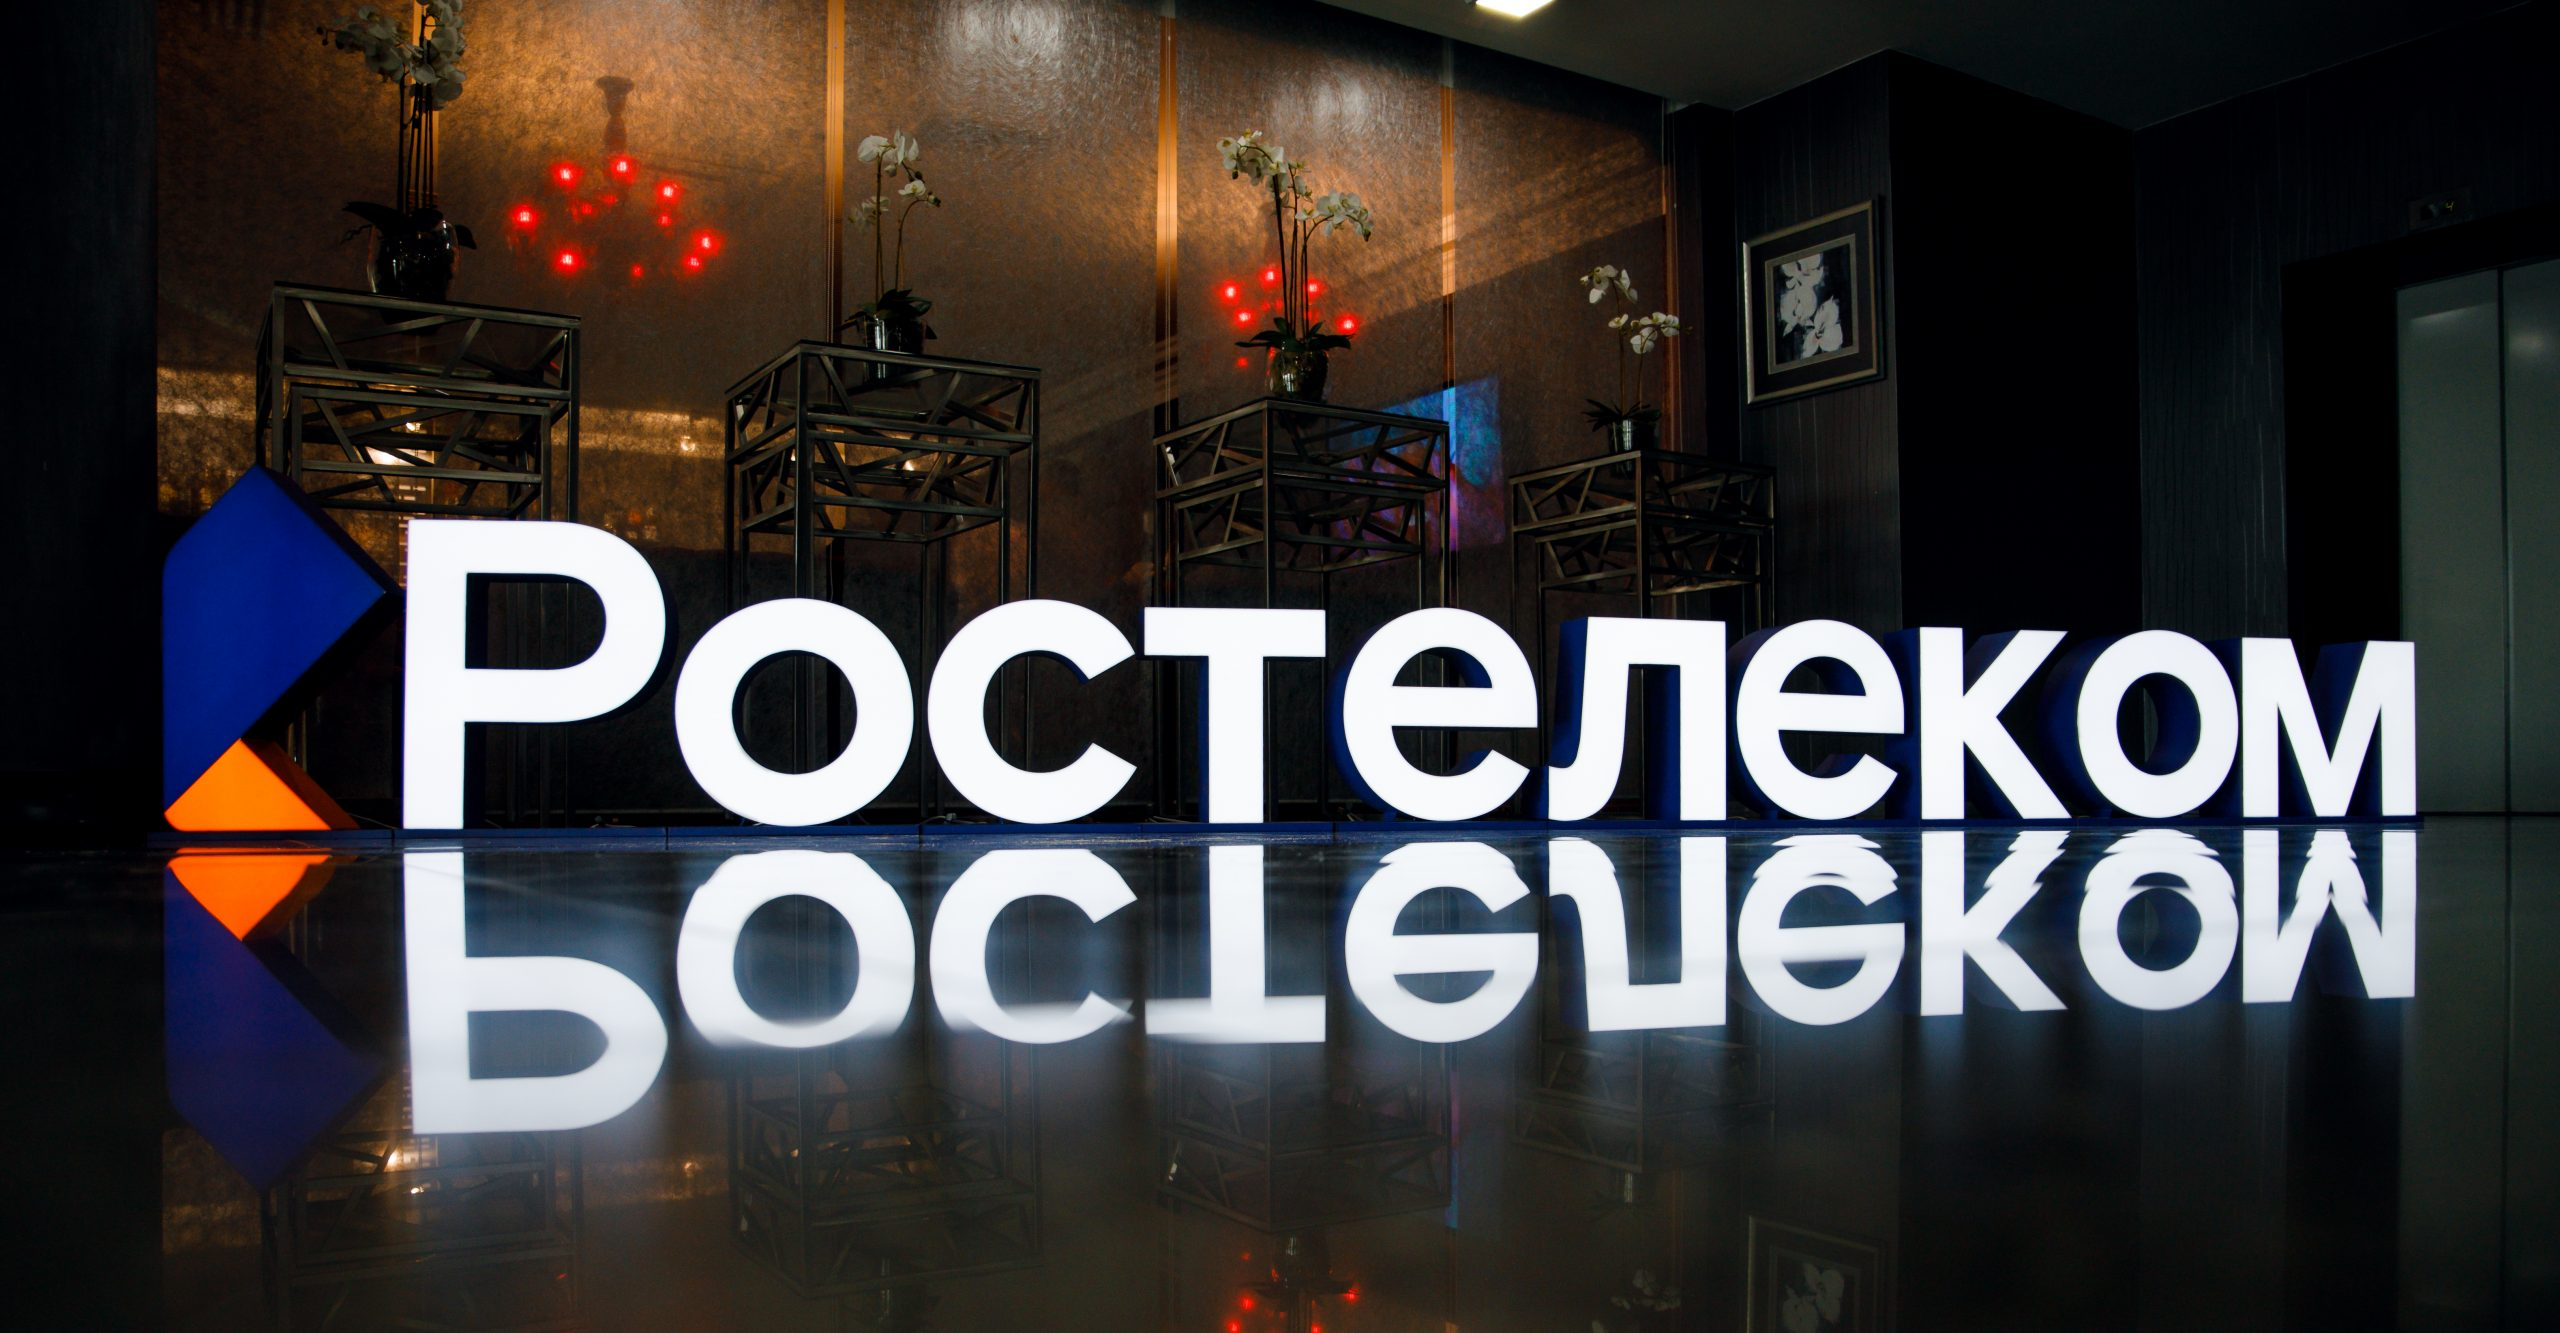 Rostelecom is completing its Key project in 5 regions for 170 million rubles